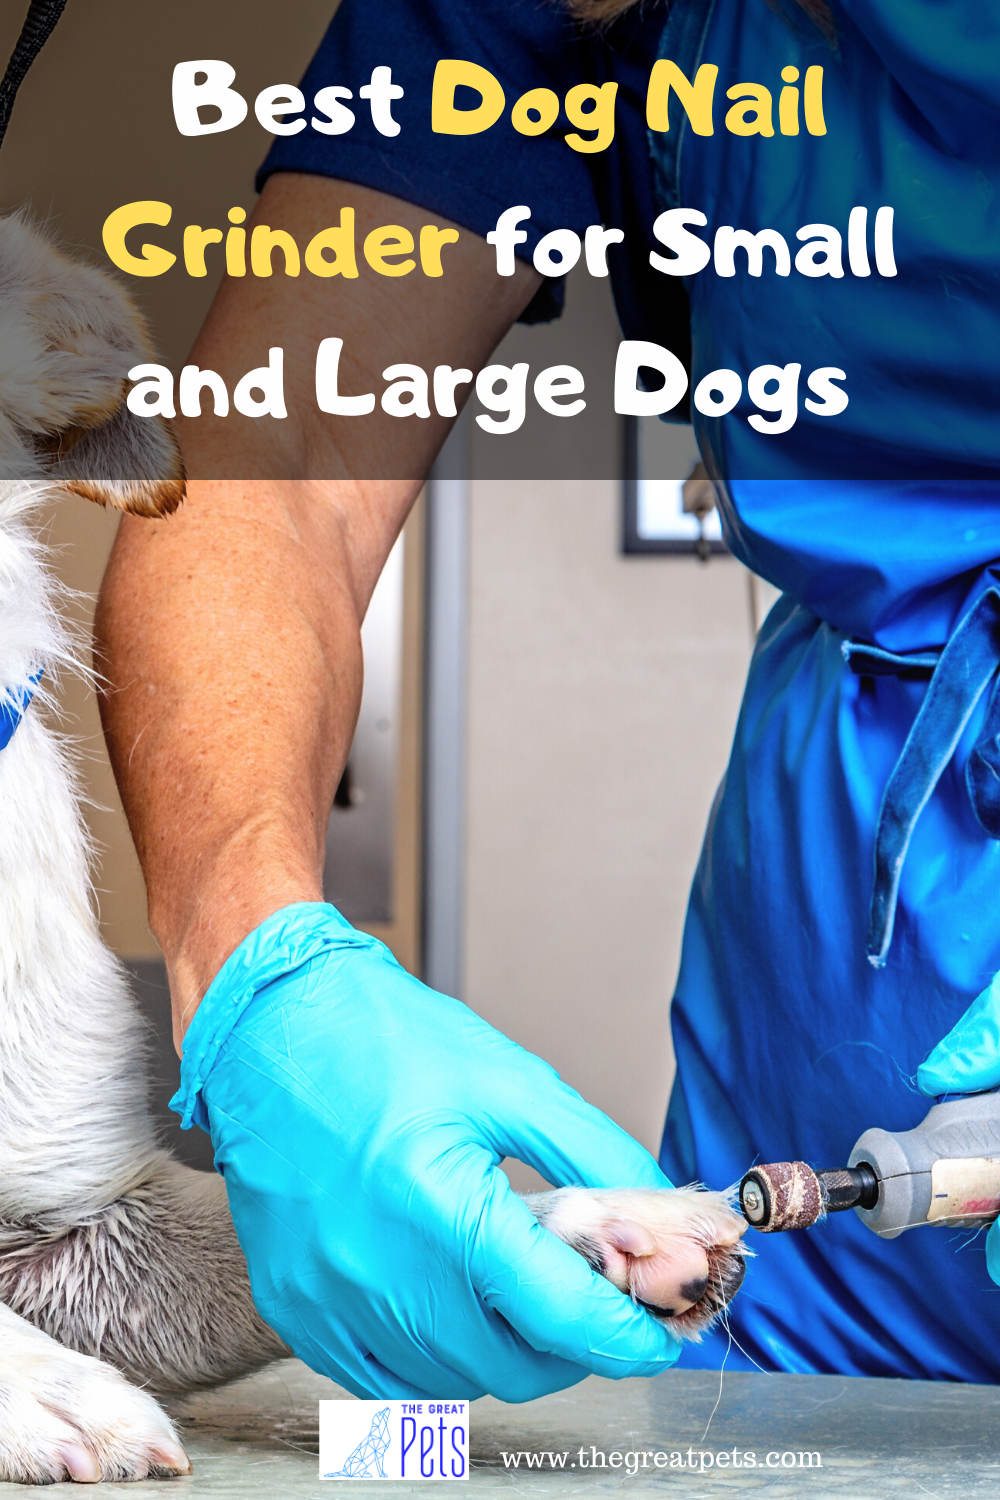 The 5 Best Dog Nail Grinder for Small and Large Dogs in